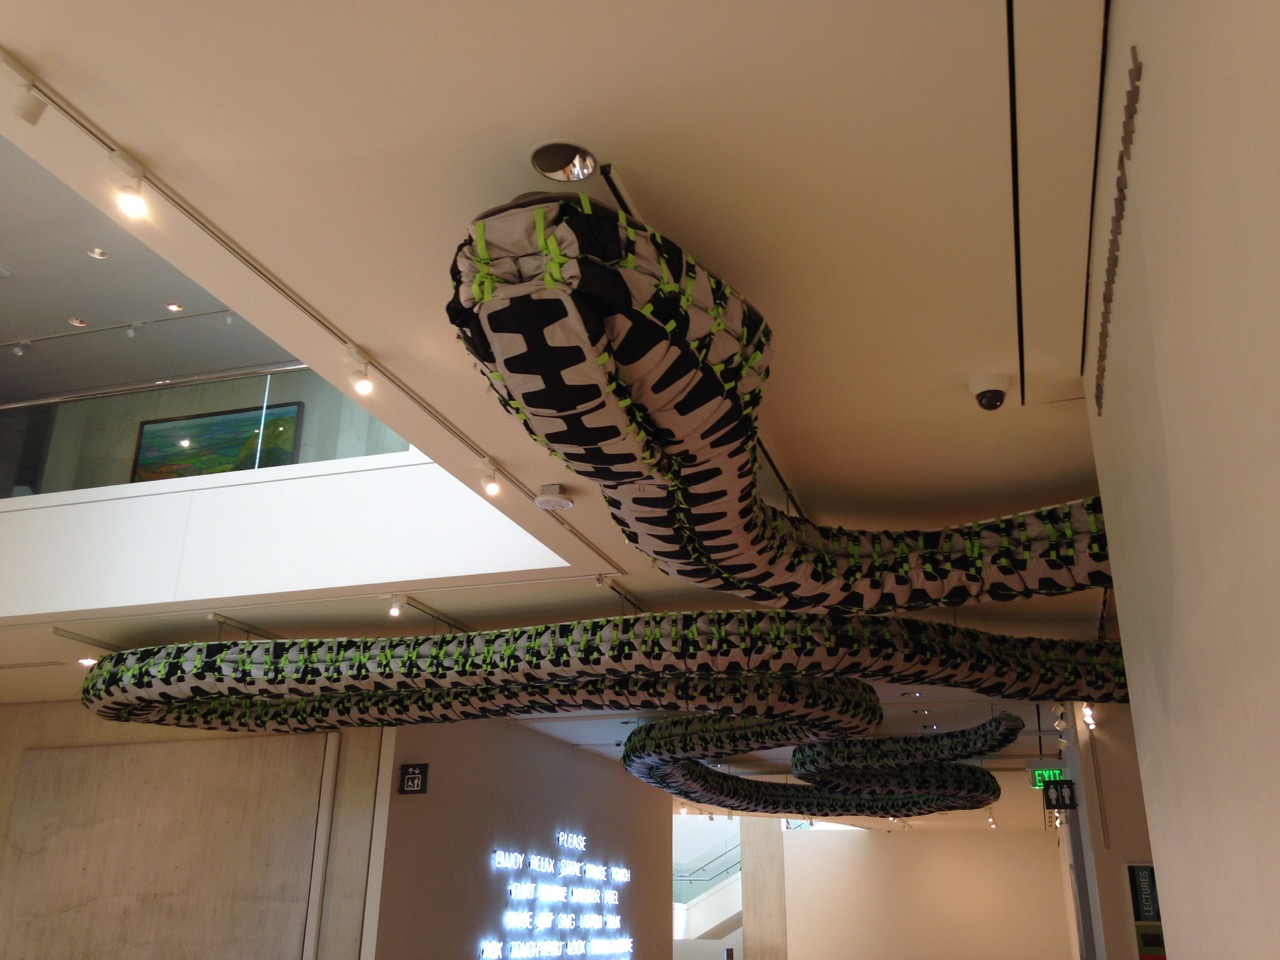 Another piece by Ai Weiwei, a snake made of backpacks, part of the Megacities Asia exhibit.